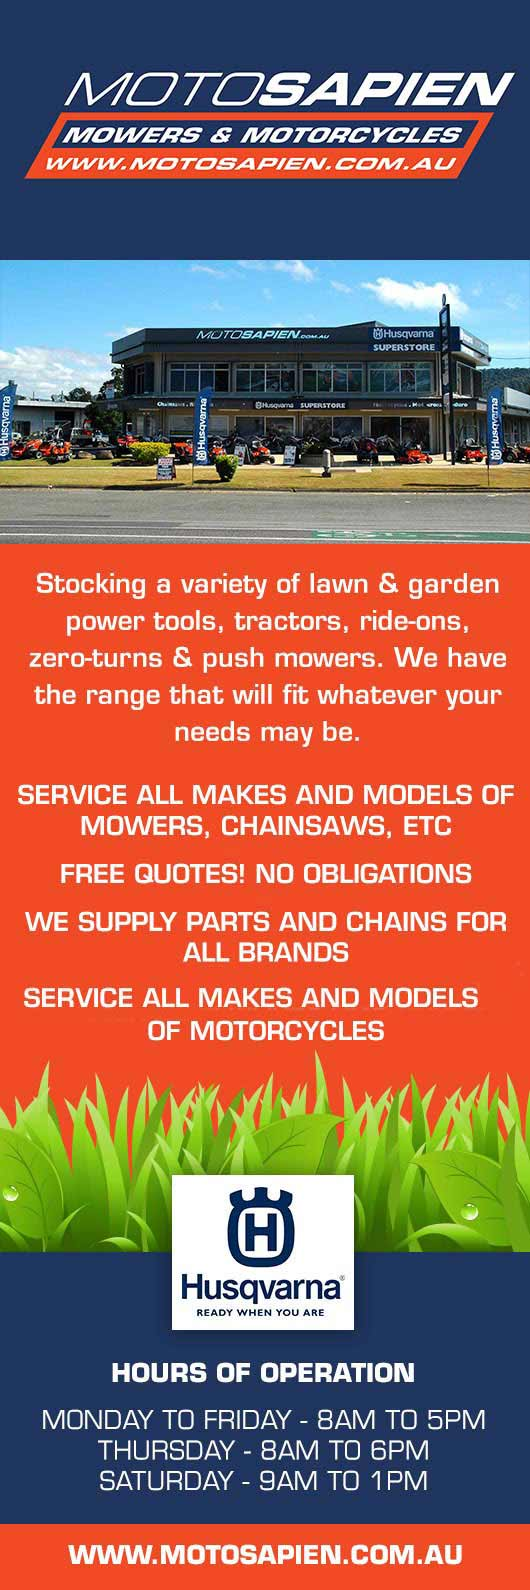 Motosapien Mowers Amp Motorcycles Cairns Lawn Mower Shops